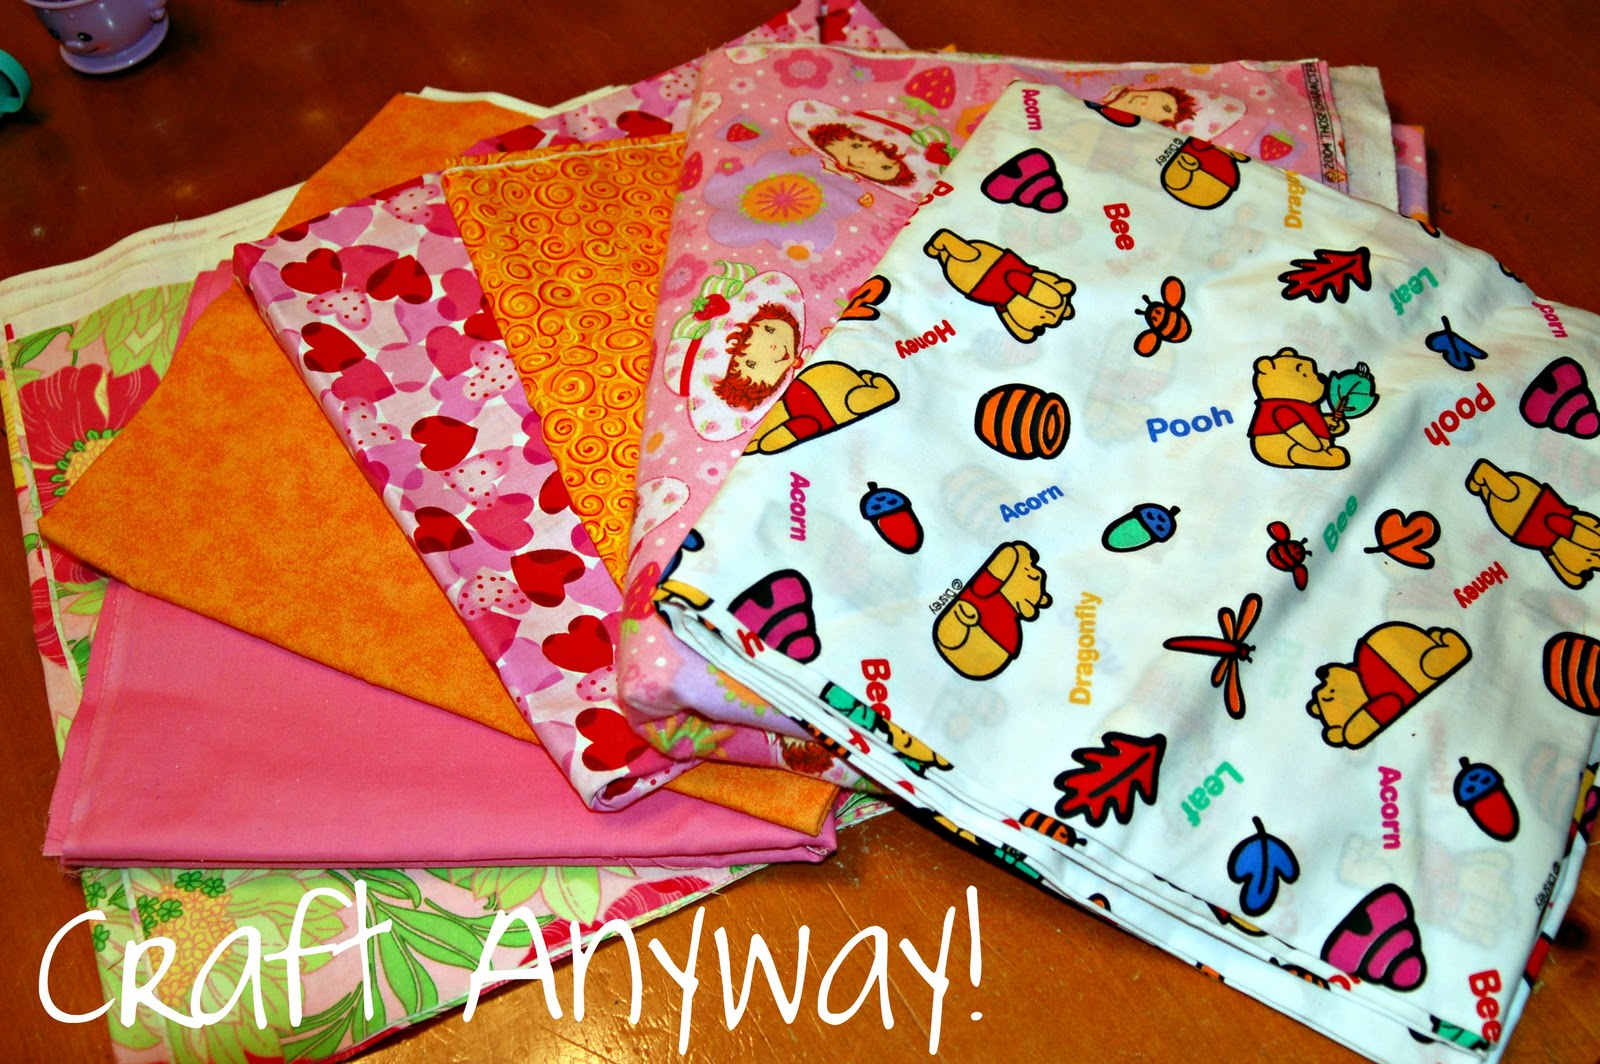 Craft anyway fabric donations giraffe grins charity for Crafts to donate to charity